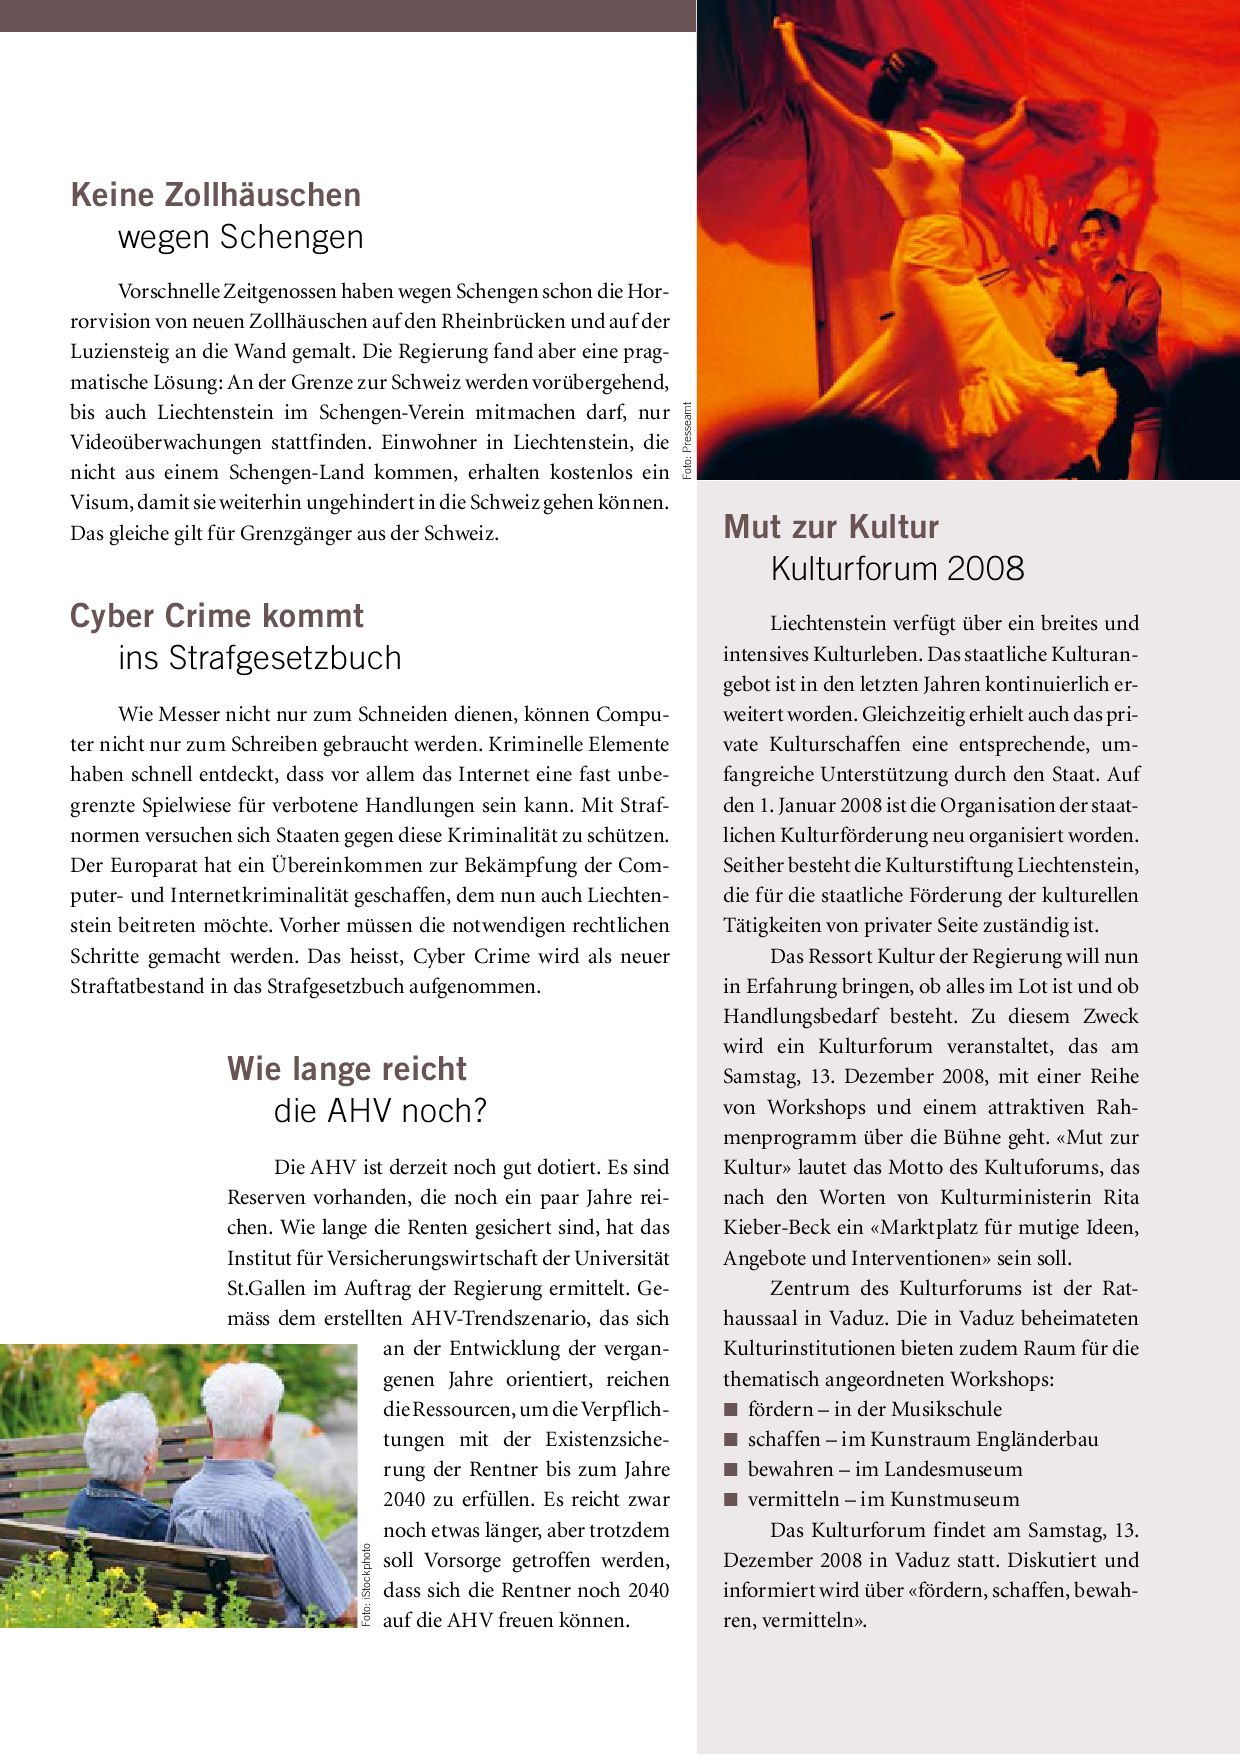 der monat dezember 2008 by alpenland verlag page 5 issuu. Black Bedroom Furniture Sets. Home Design Ideas